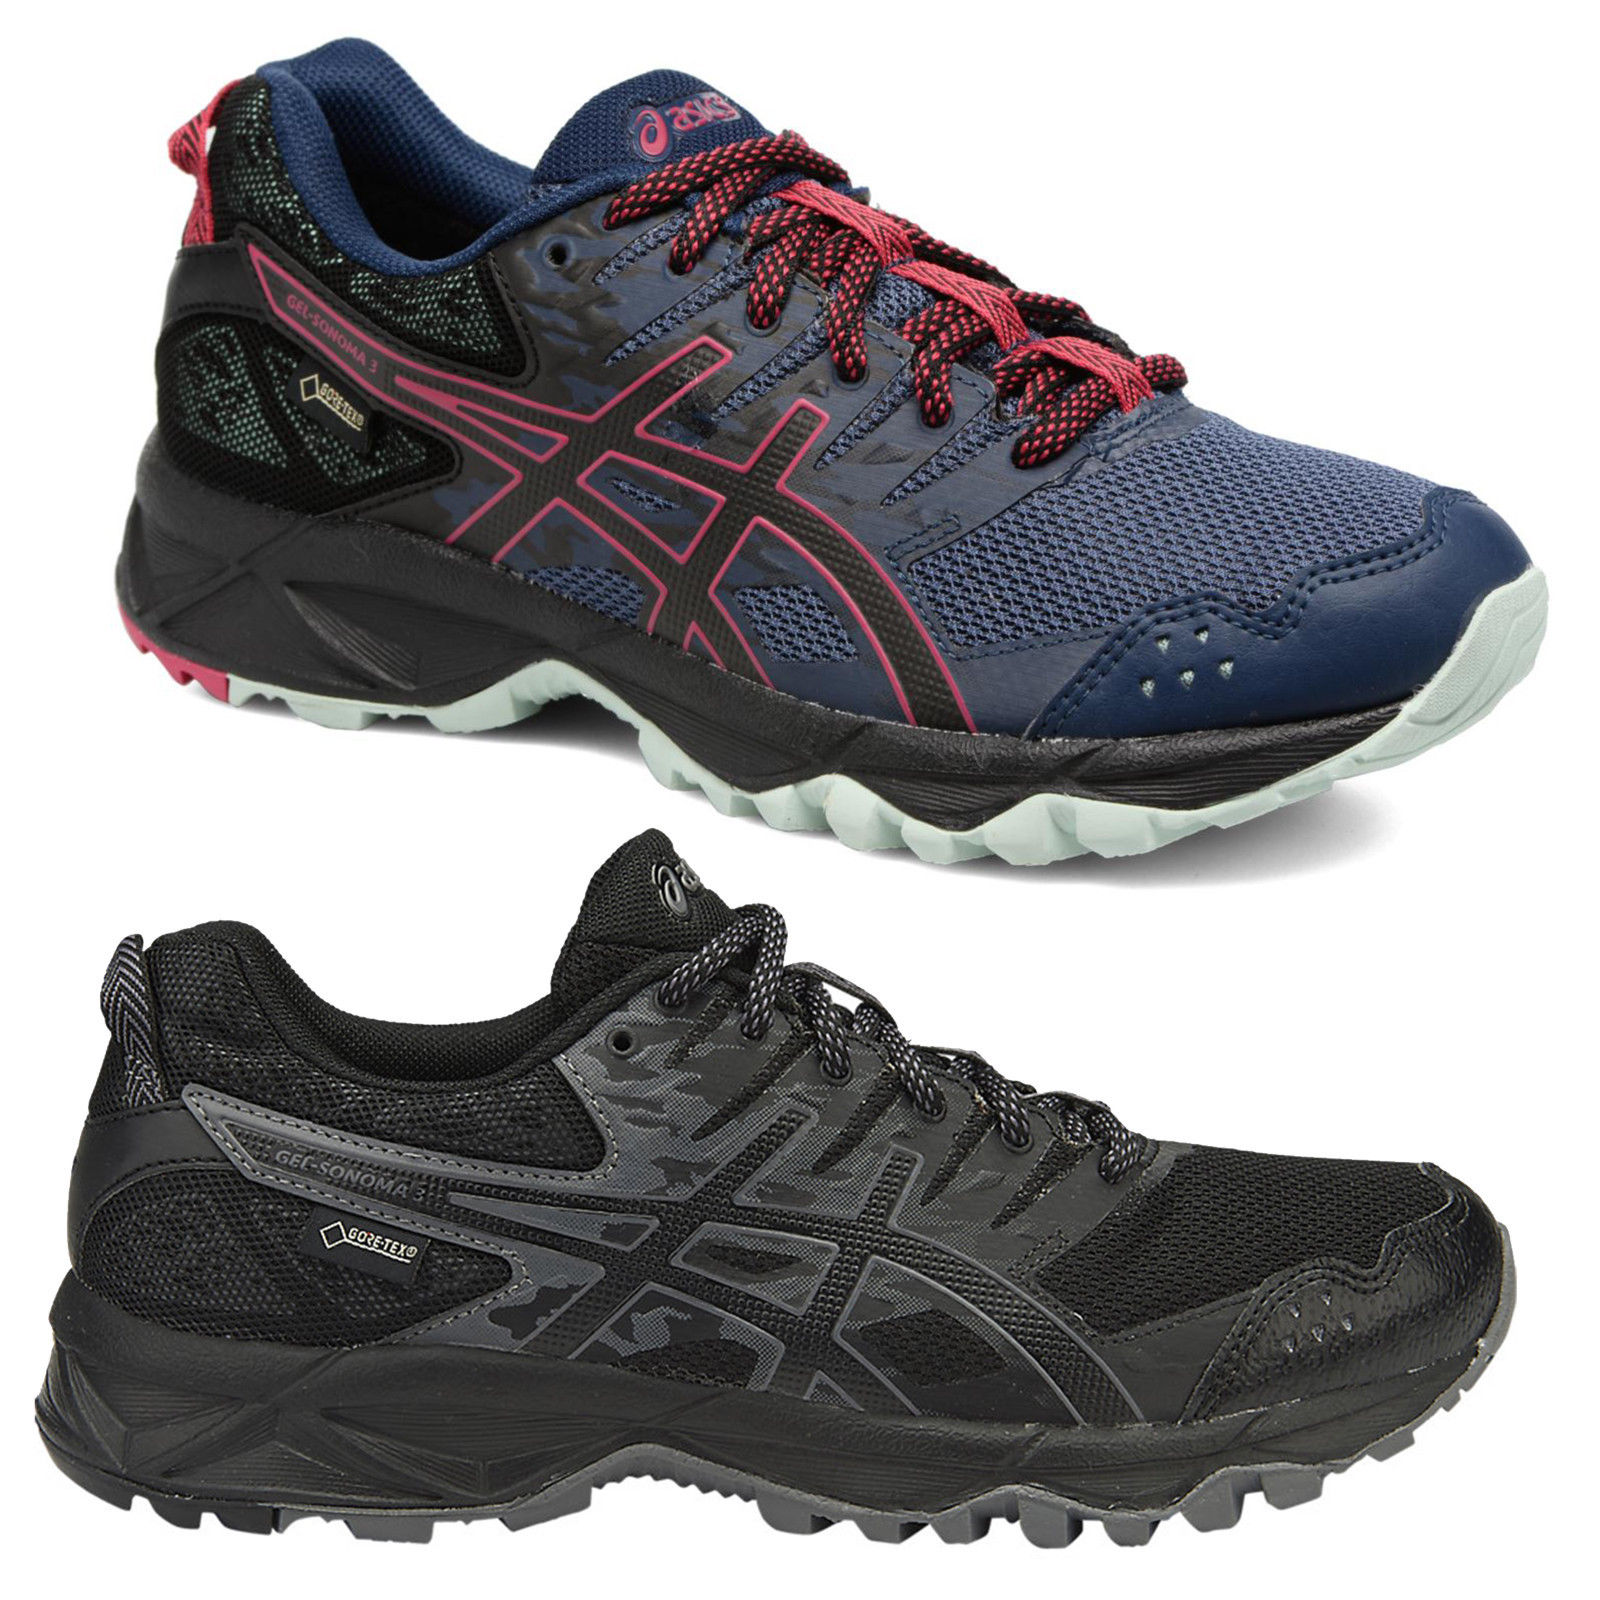 ada1448b0faf Womens Asics Gel-Sonoma 3 Gore-Tex Trail Running Shoes Sizes 4.5 to ...